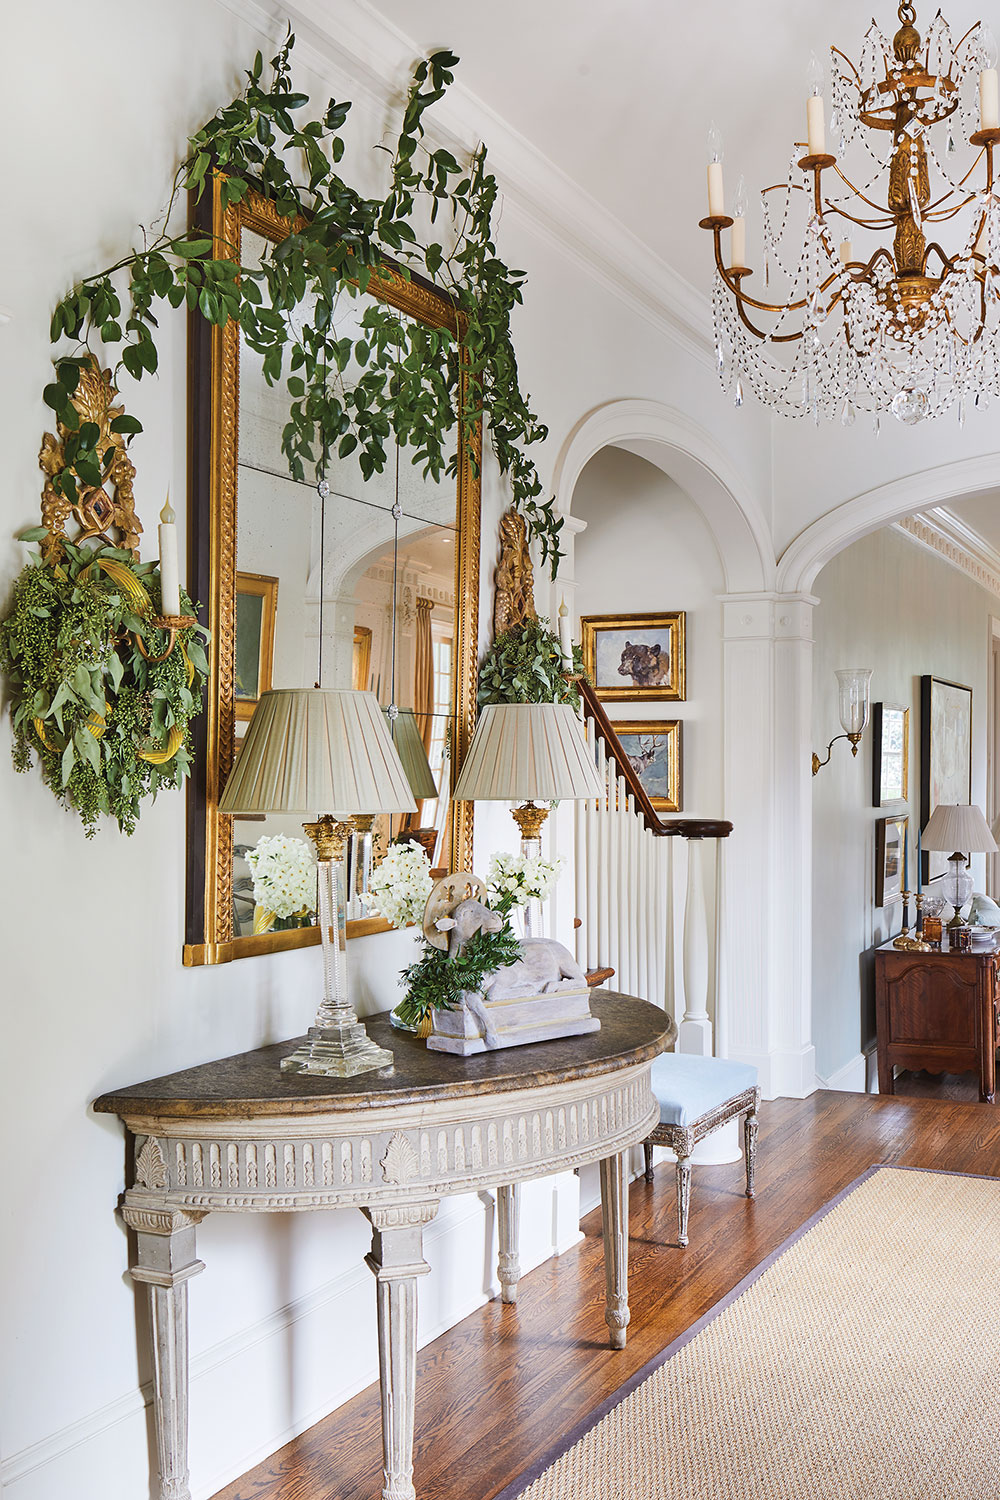 The painted foyer's architecture features high ceilings and gracious arches. Jane Schwab decorated it with a gilded chandelier adorned with delicate crystal swags, a simple sea grass or sisal rug, a semi-circle entry table, and a large gilded antique complemented by Italian sconces on either side.